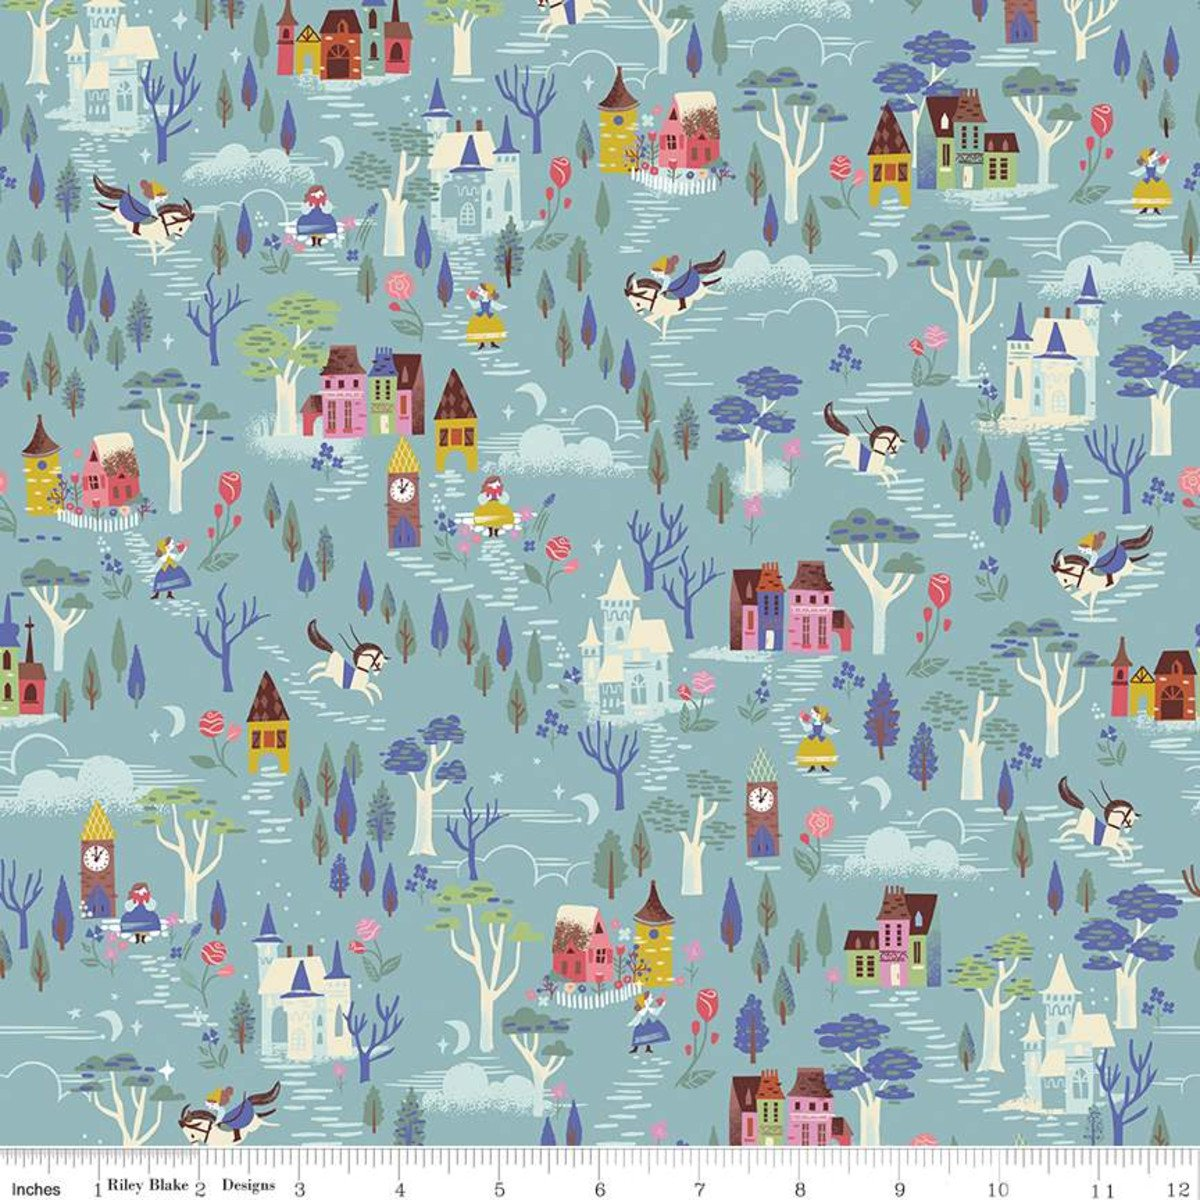 Beauty & the Beast French Countryside Blue Fabric by Riley Blake